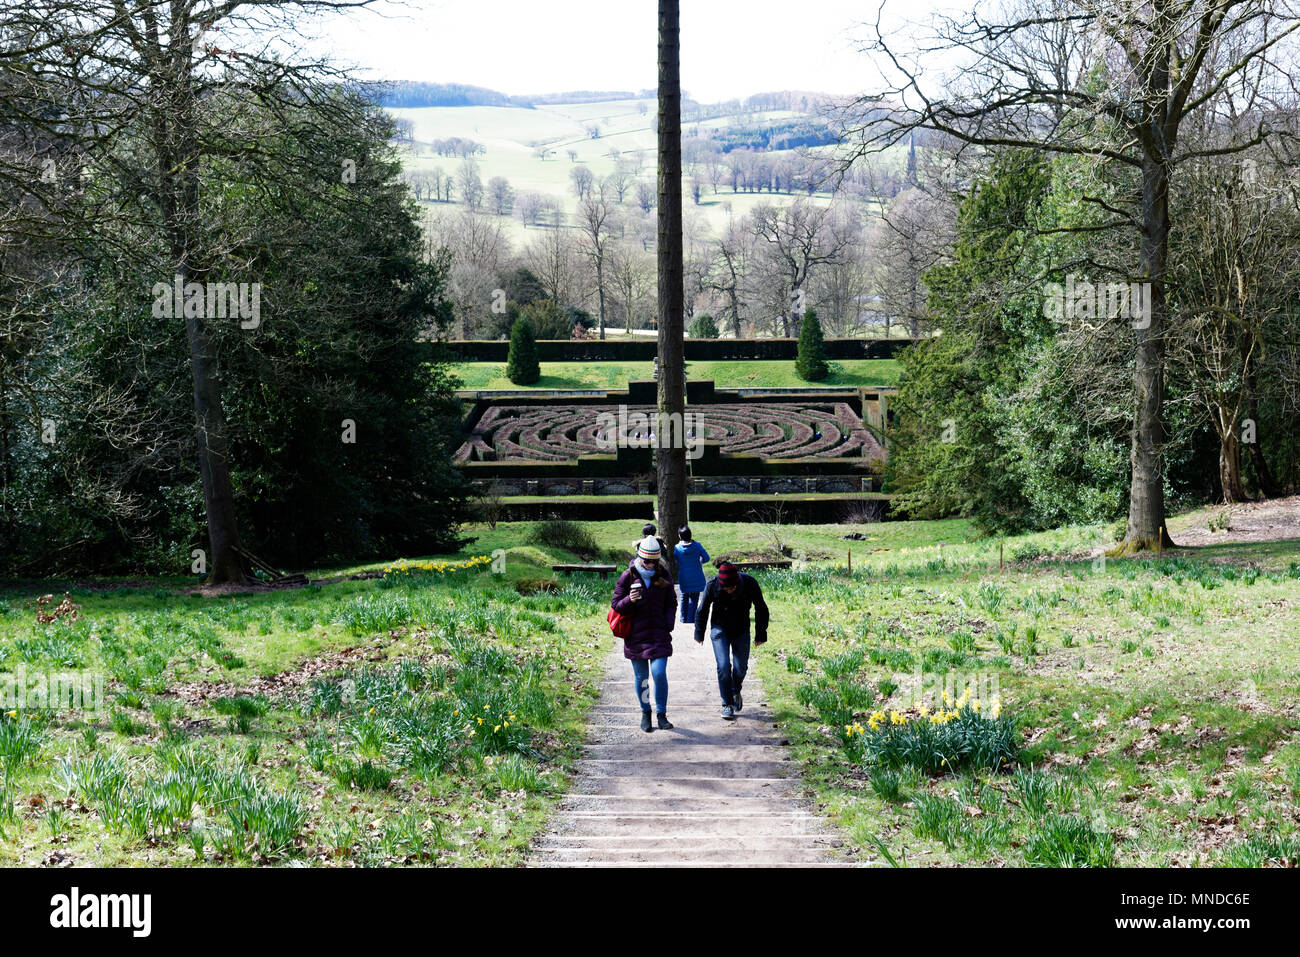 The maze at Chatsworth House near Bakewell in Derbyshire, England - Stock Image